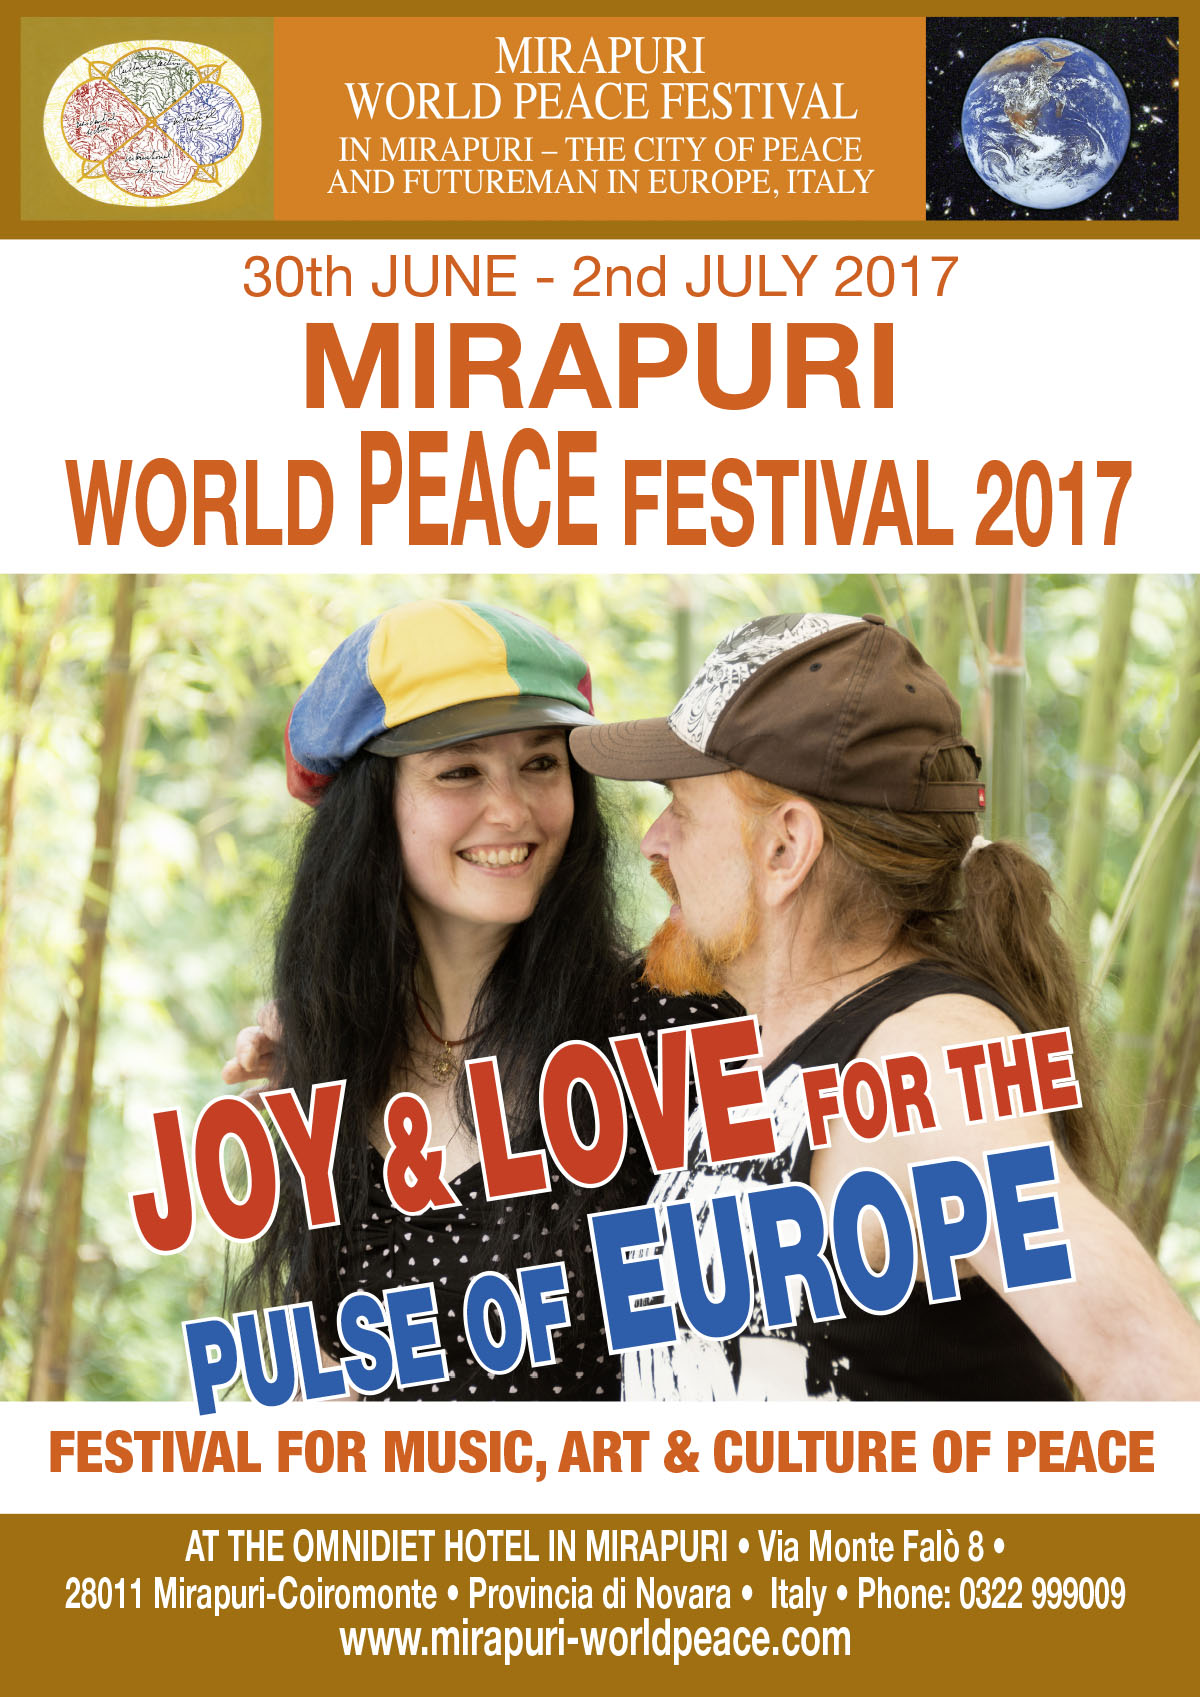 Mirapuri World Peace Festival 2017